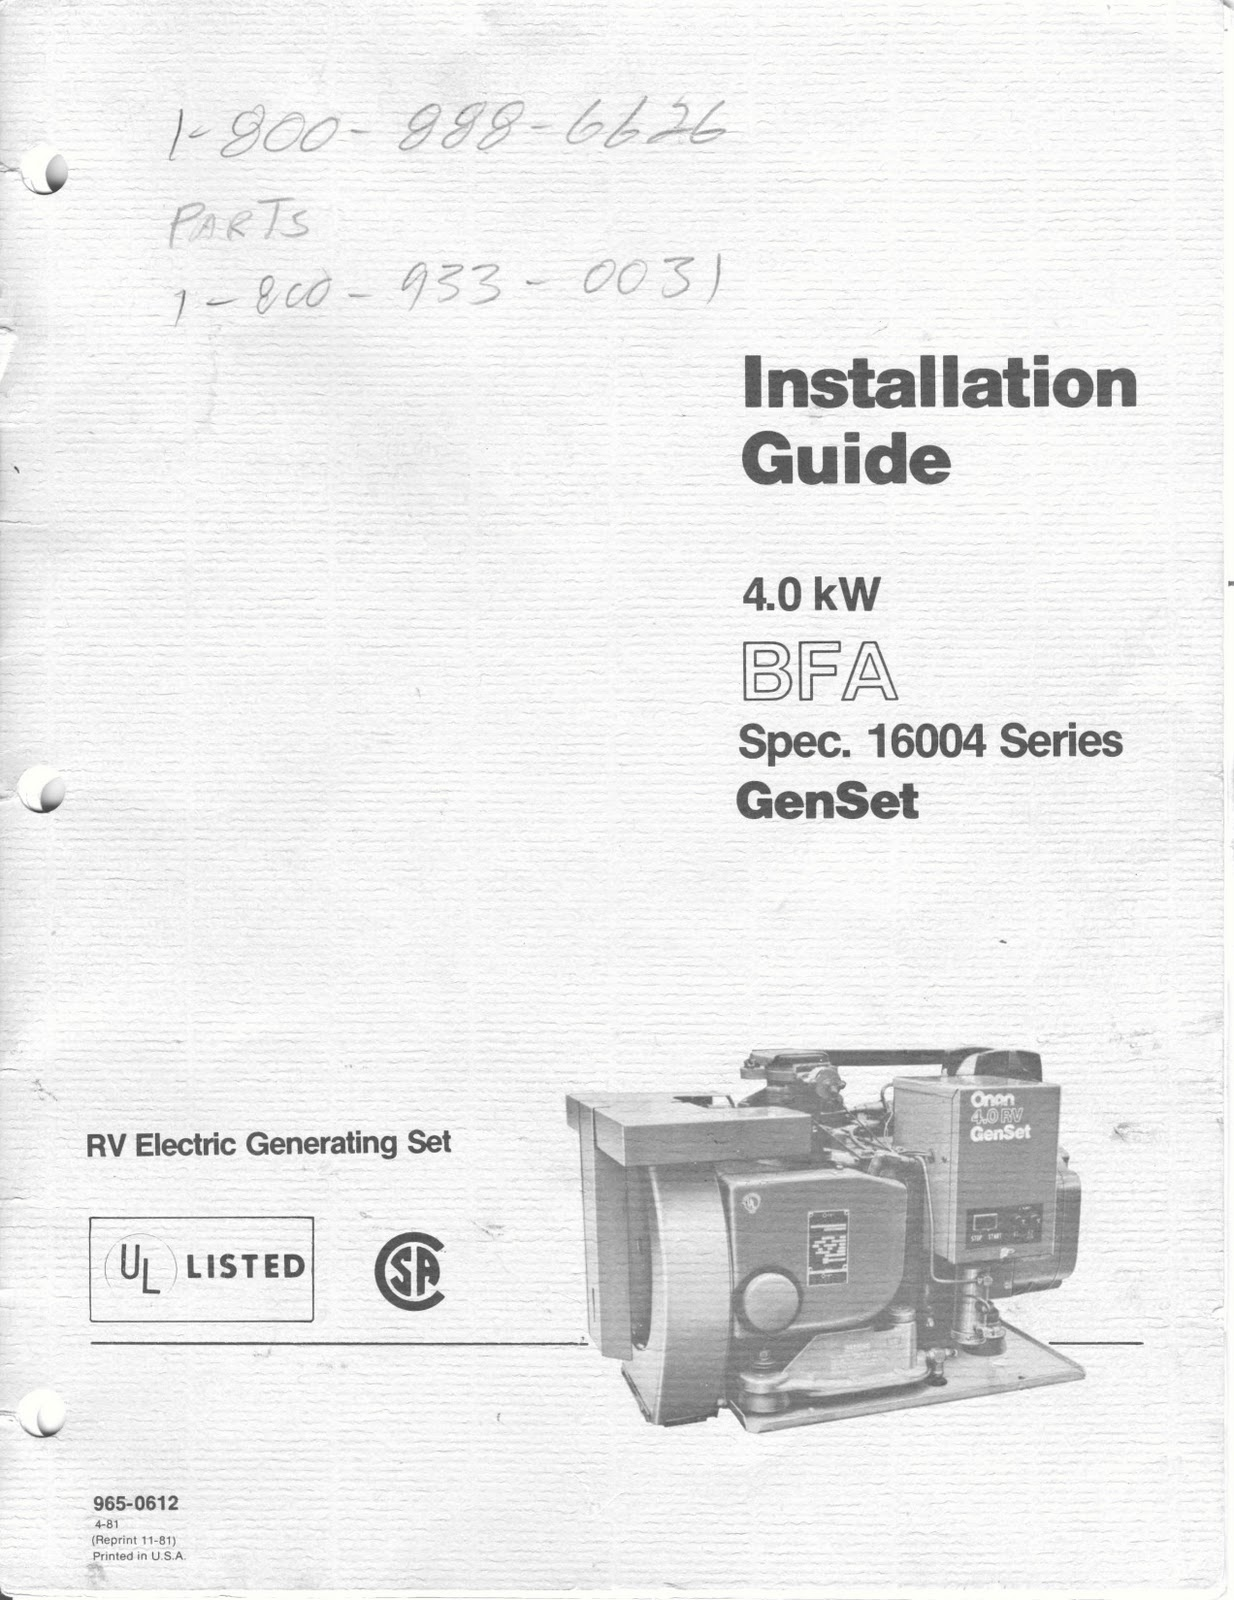 Onan 4 0 Rv Genset Wiring Diagram 33 Images 5 Bgd Emerald Generator 4kw Bfa Install0001 001 1983 Fleetwood Pace Arrow Owners Manuals